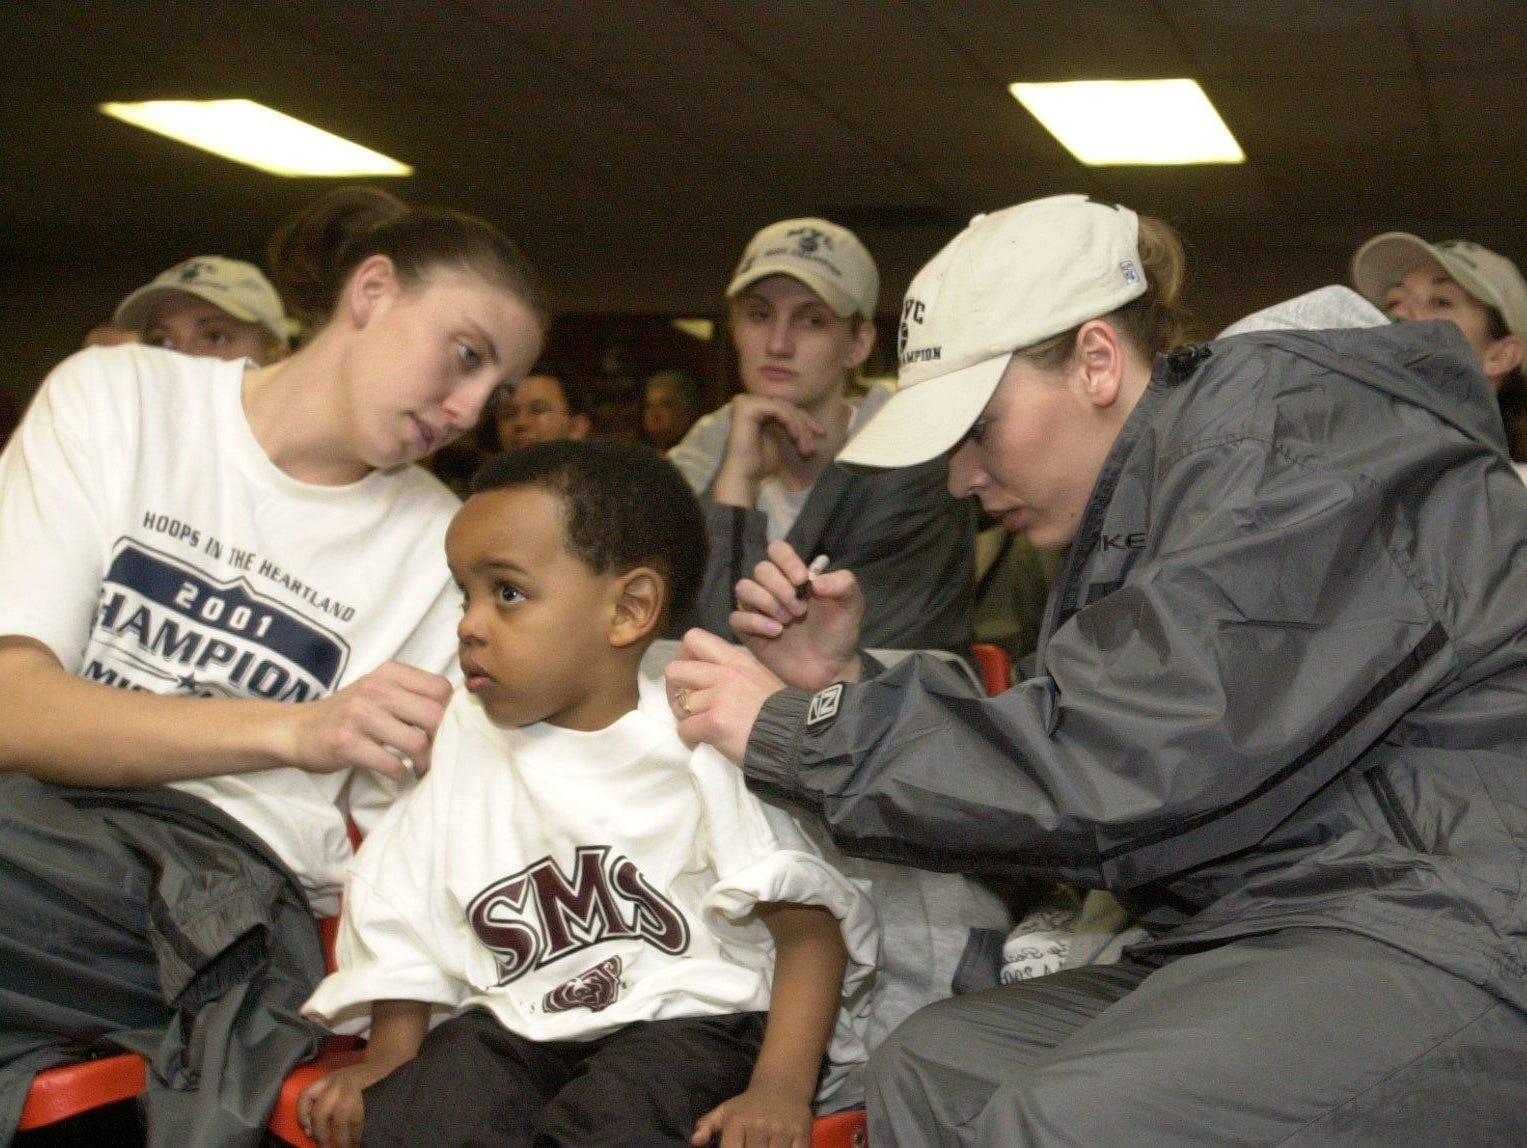 Jackie Stiles, right, signs autograph for Niekie Thomas, then 2, while teammate Carly Deer looks on during a watch party for NCAA Tournament seeding in 2001.